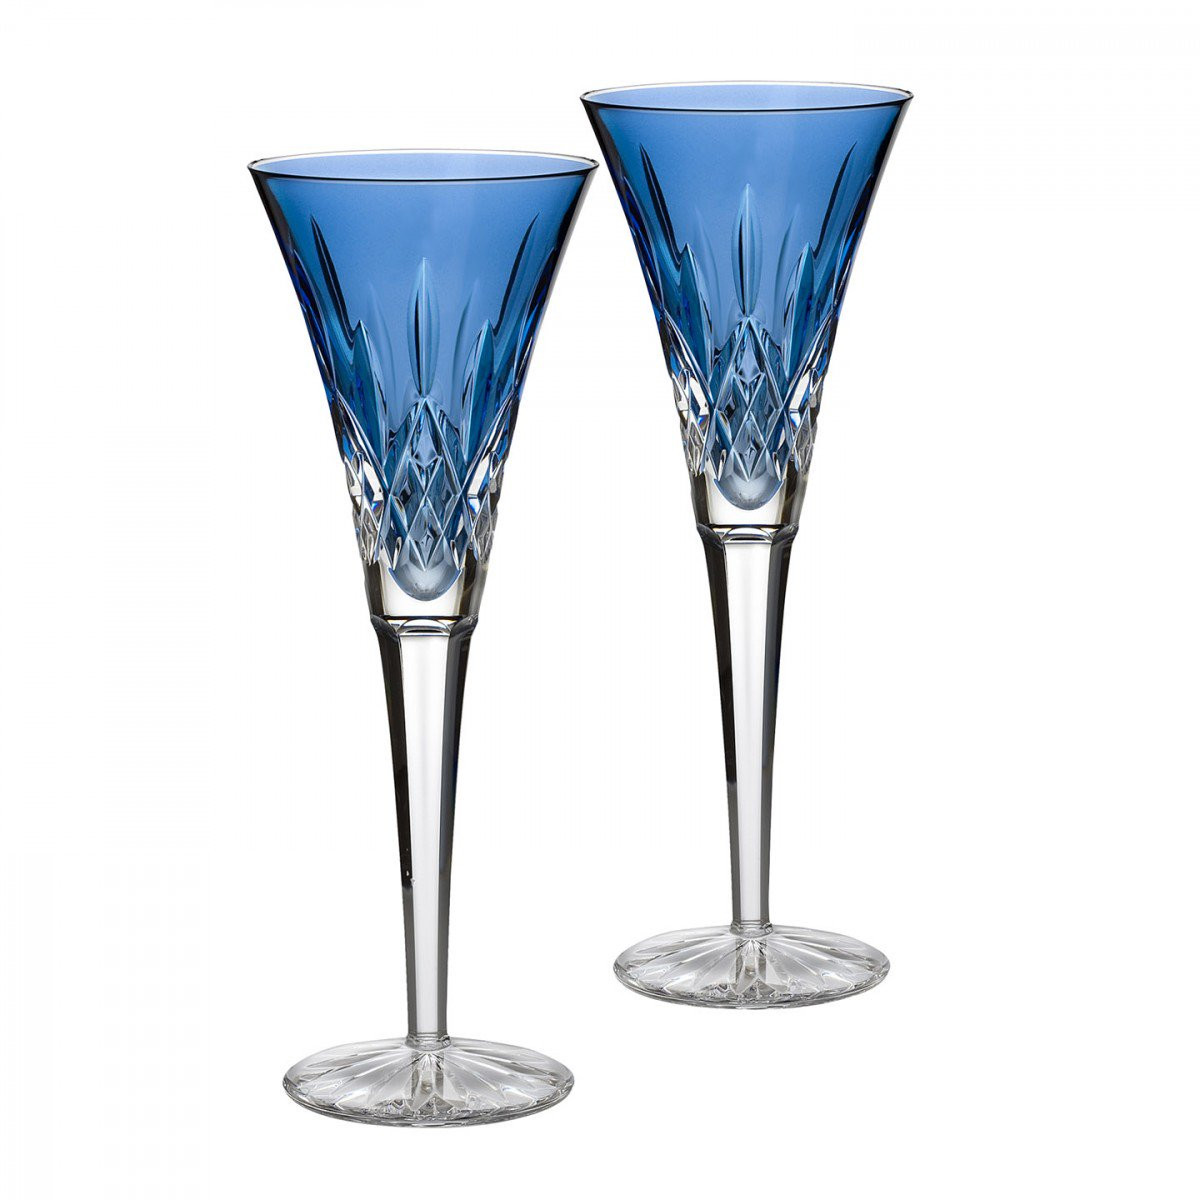 waterford lismore flared vase of lismore sapphire toasting flute pair waterford us intended for lismore sapphire toasting flute pair